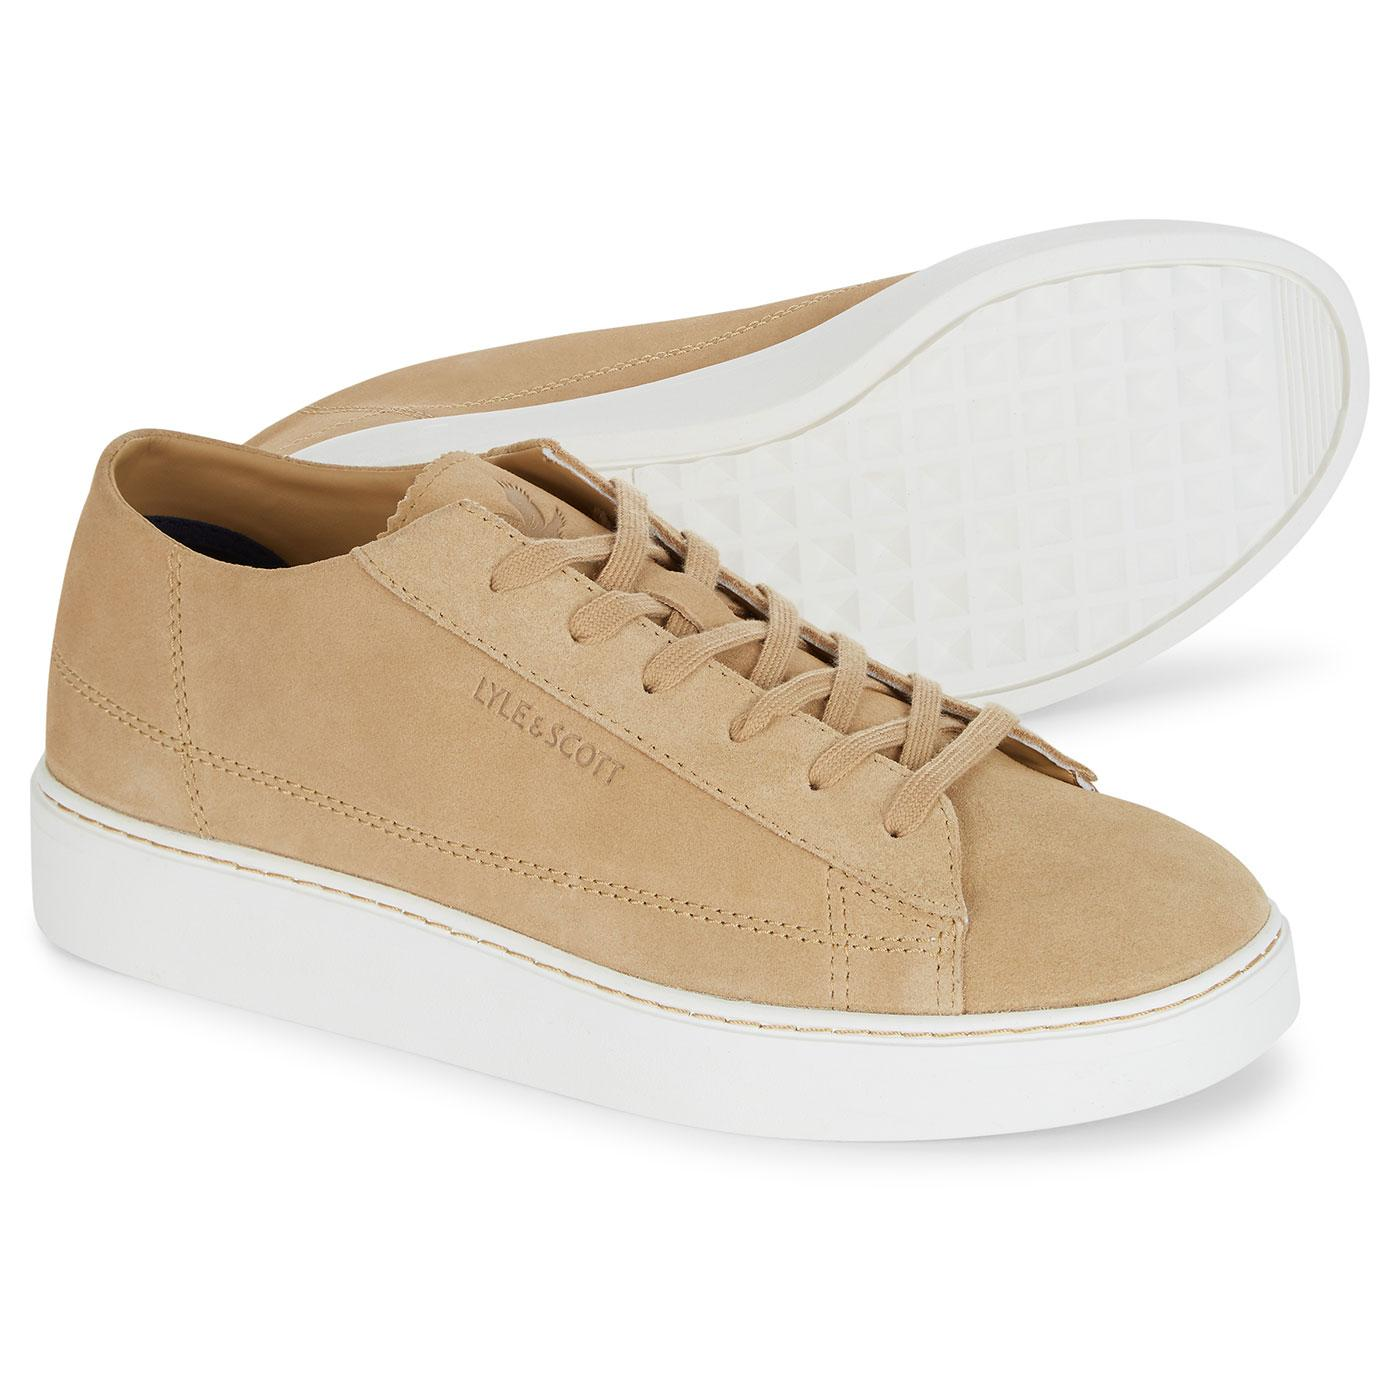 Shankly LYLE & SCOTT Retro Suede Trainers TAN